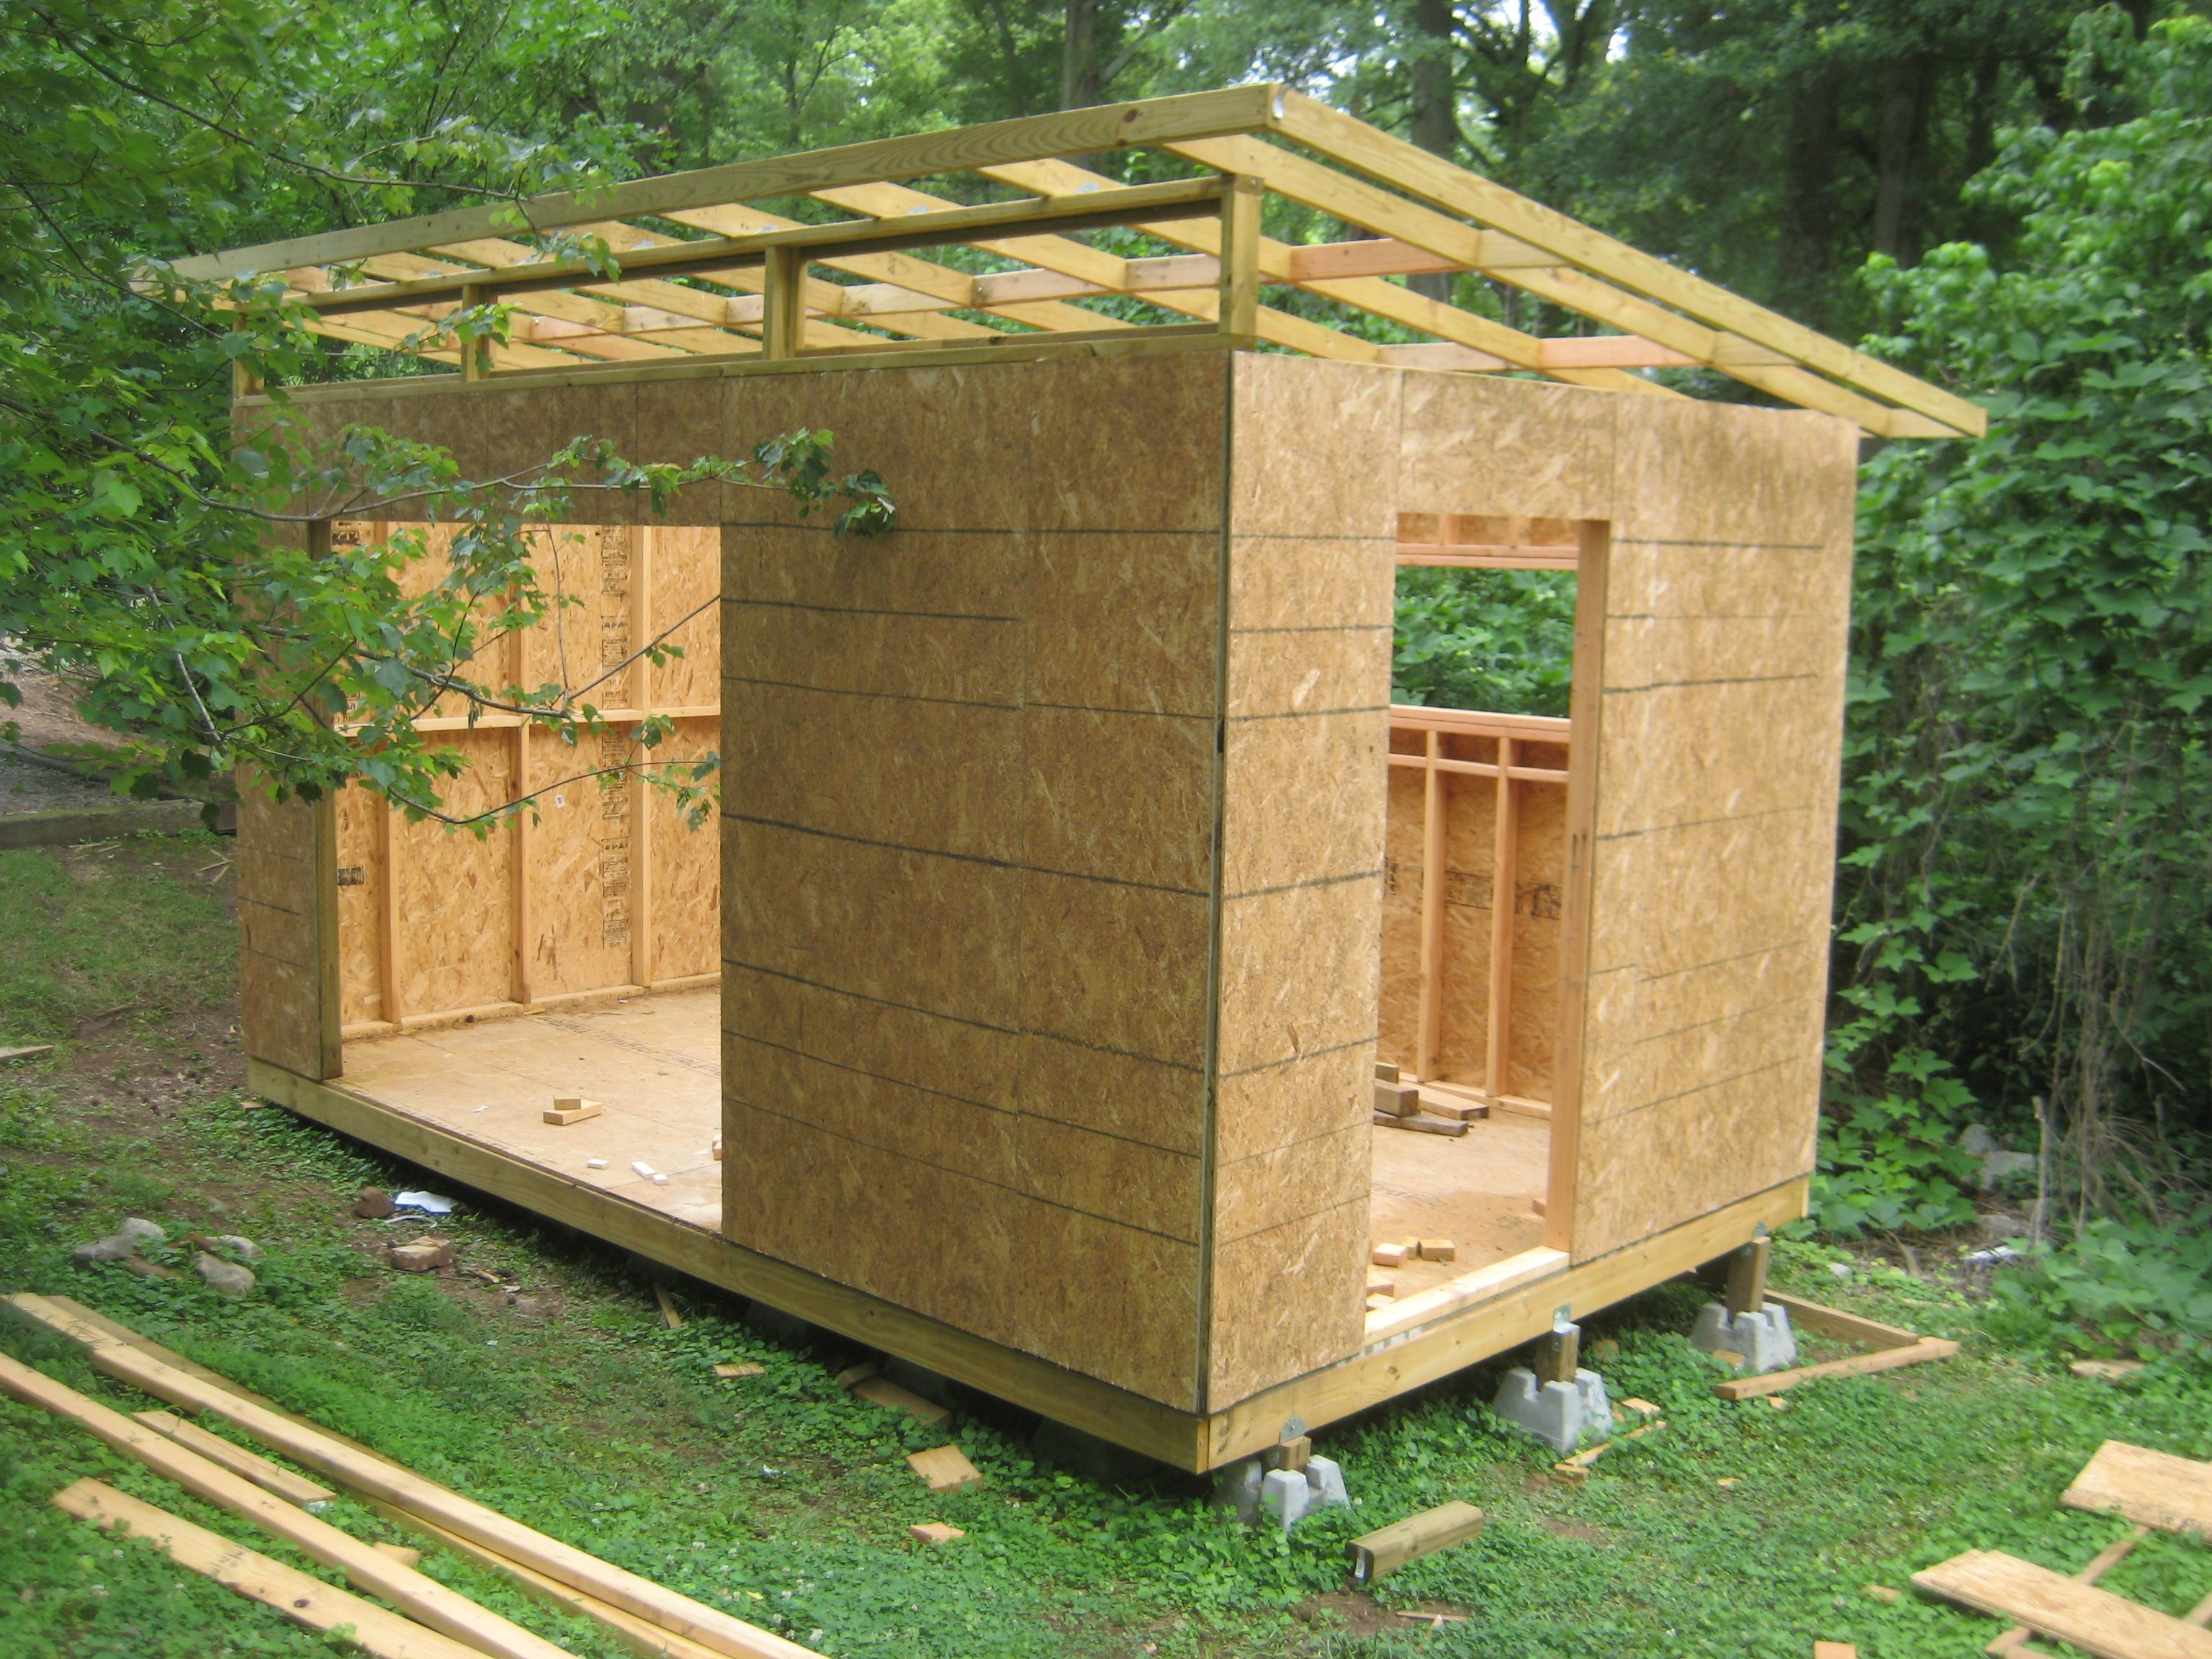 Garden Shed Designs how to build a garden shed building a shed how to build a shed video diy yard shed build Diy Modern Shed Project